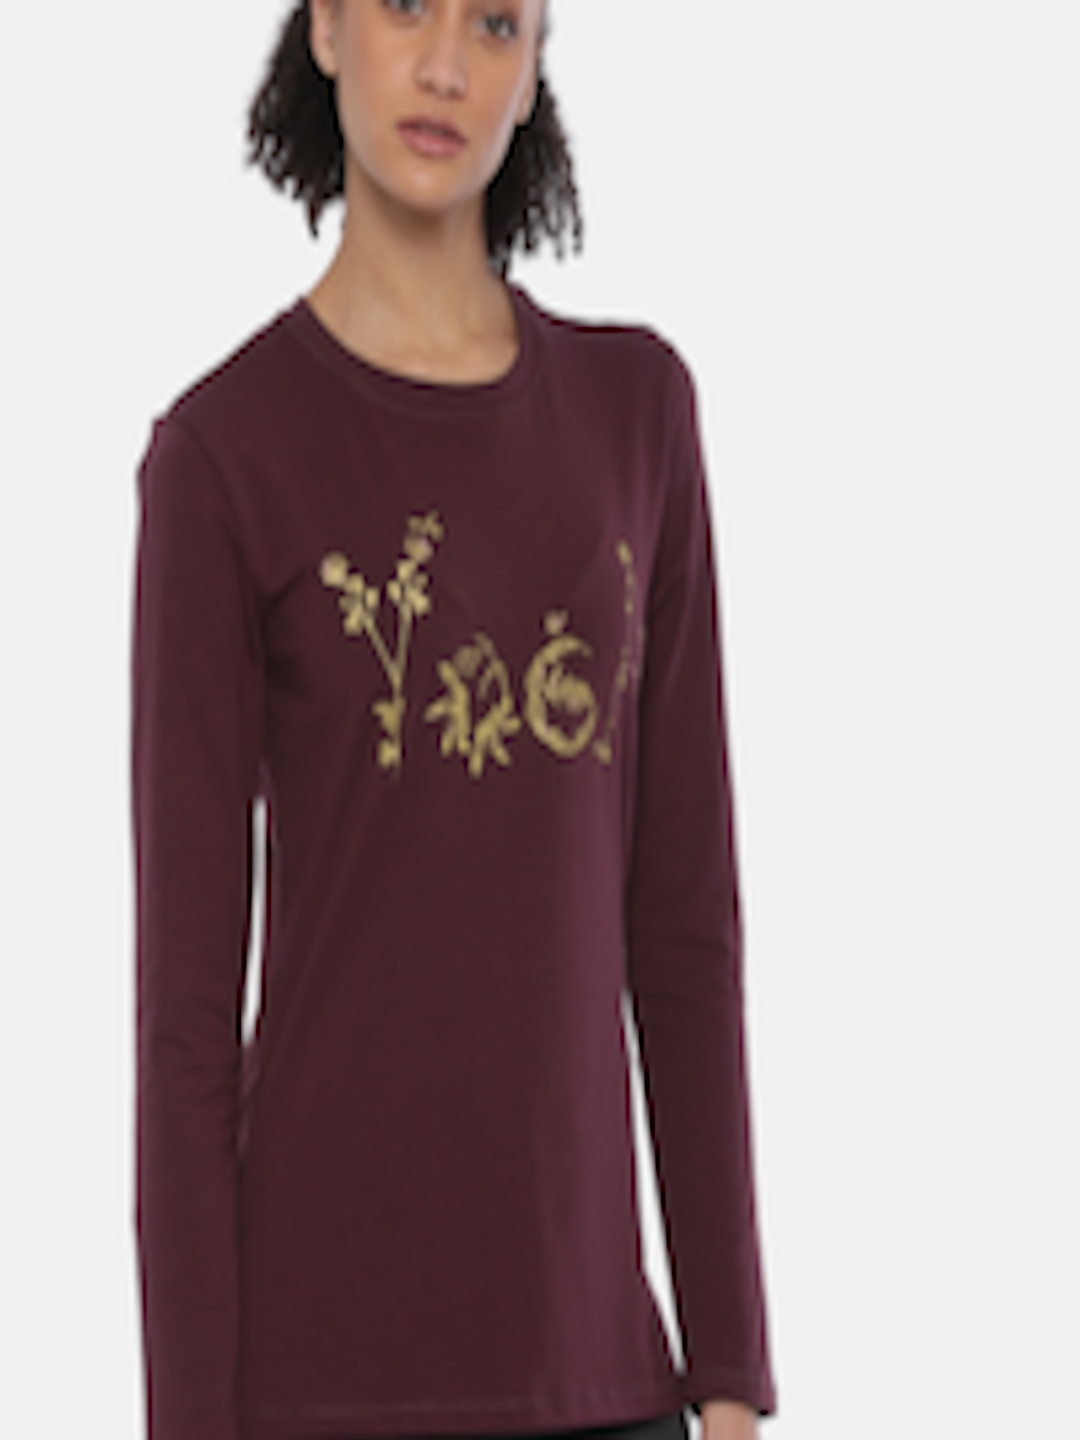 a75d5aca382 Buy Enamor Women Burgundy Printed Round Neck Lounge Sweatshirt - - Apparel  for Women